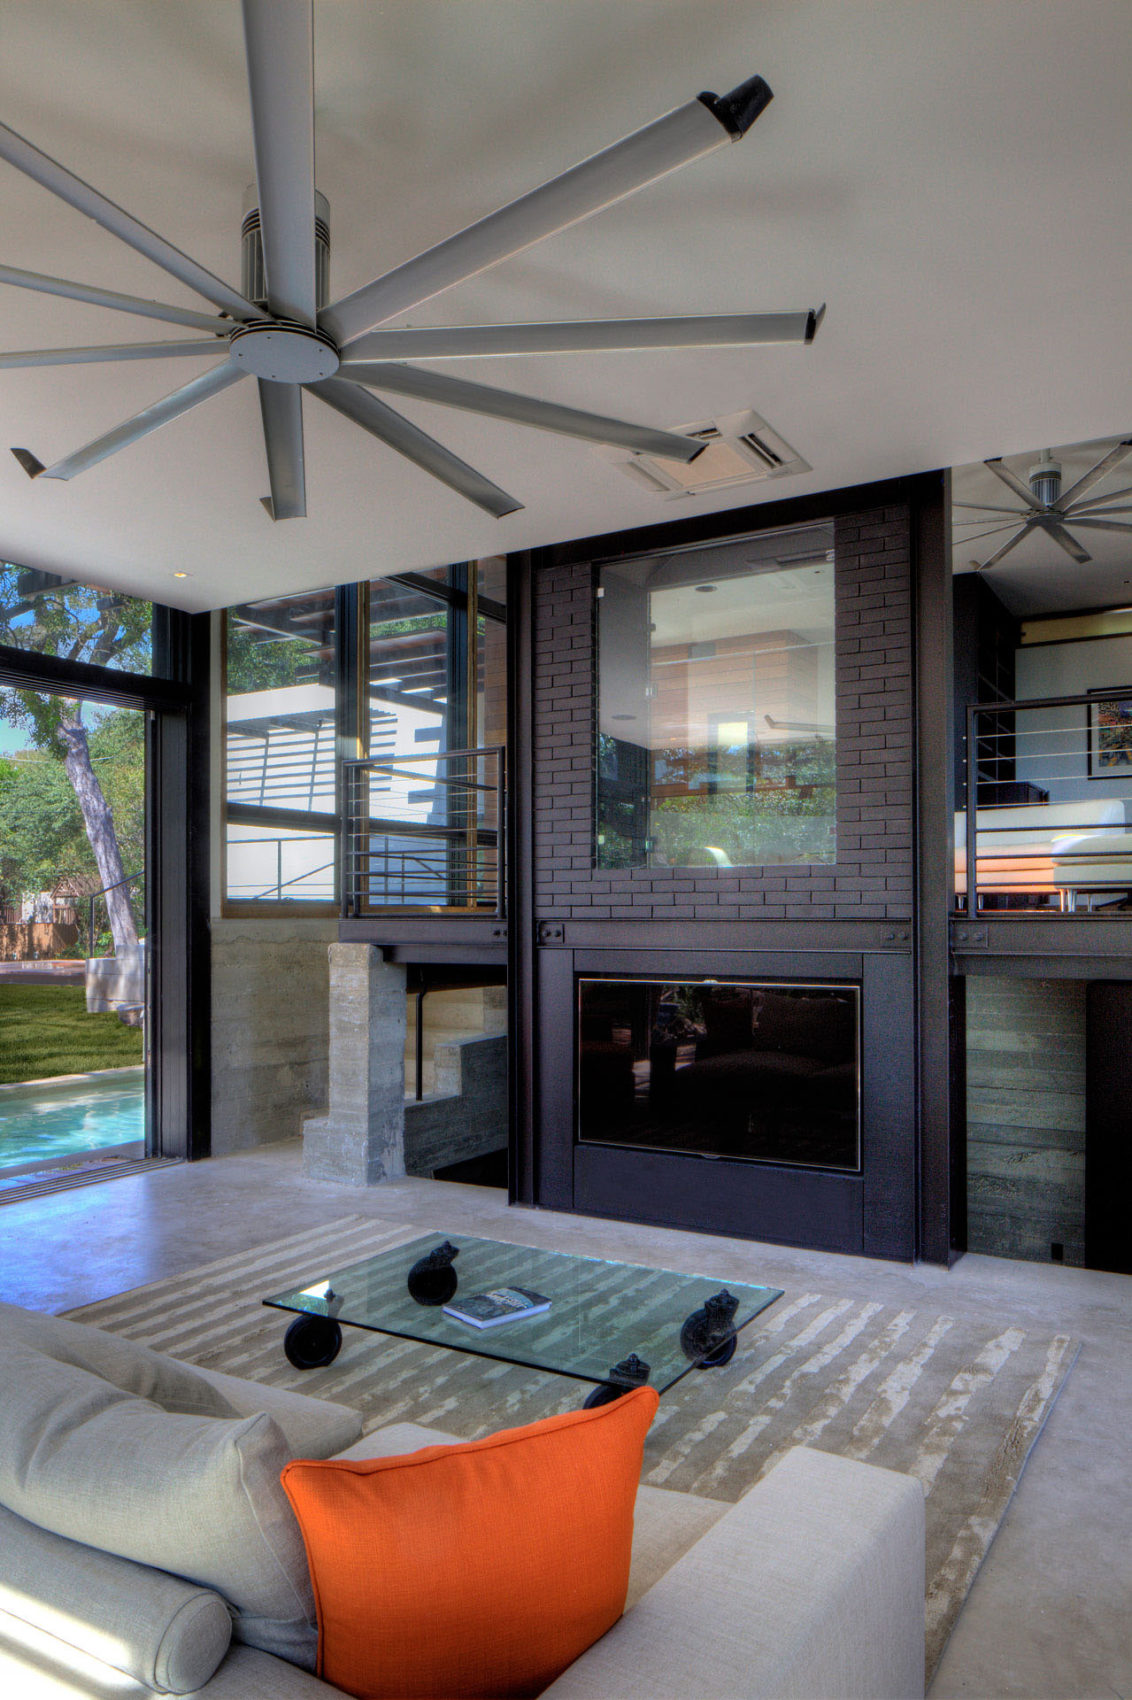 Green Lantern Residence by John Grable Architects (19)